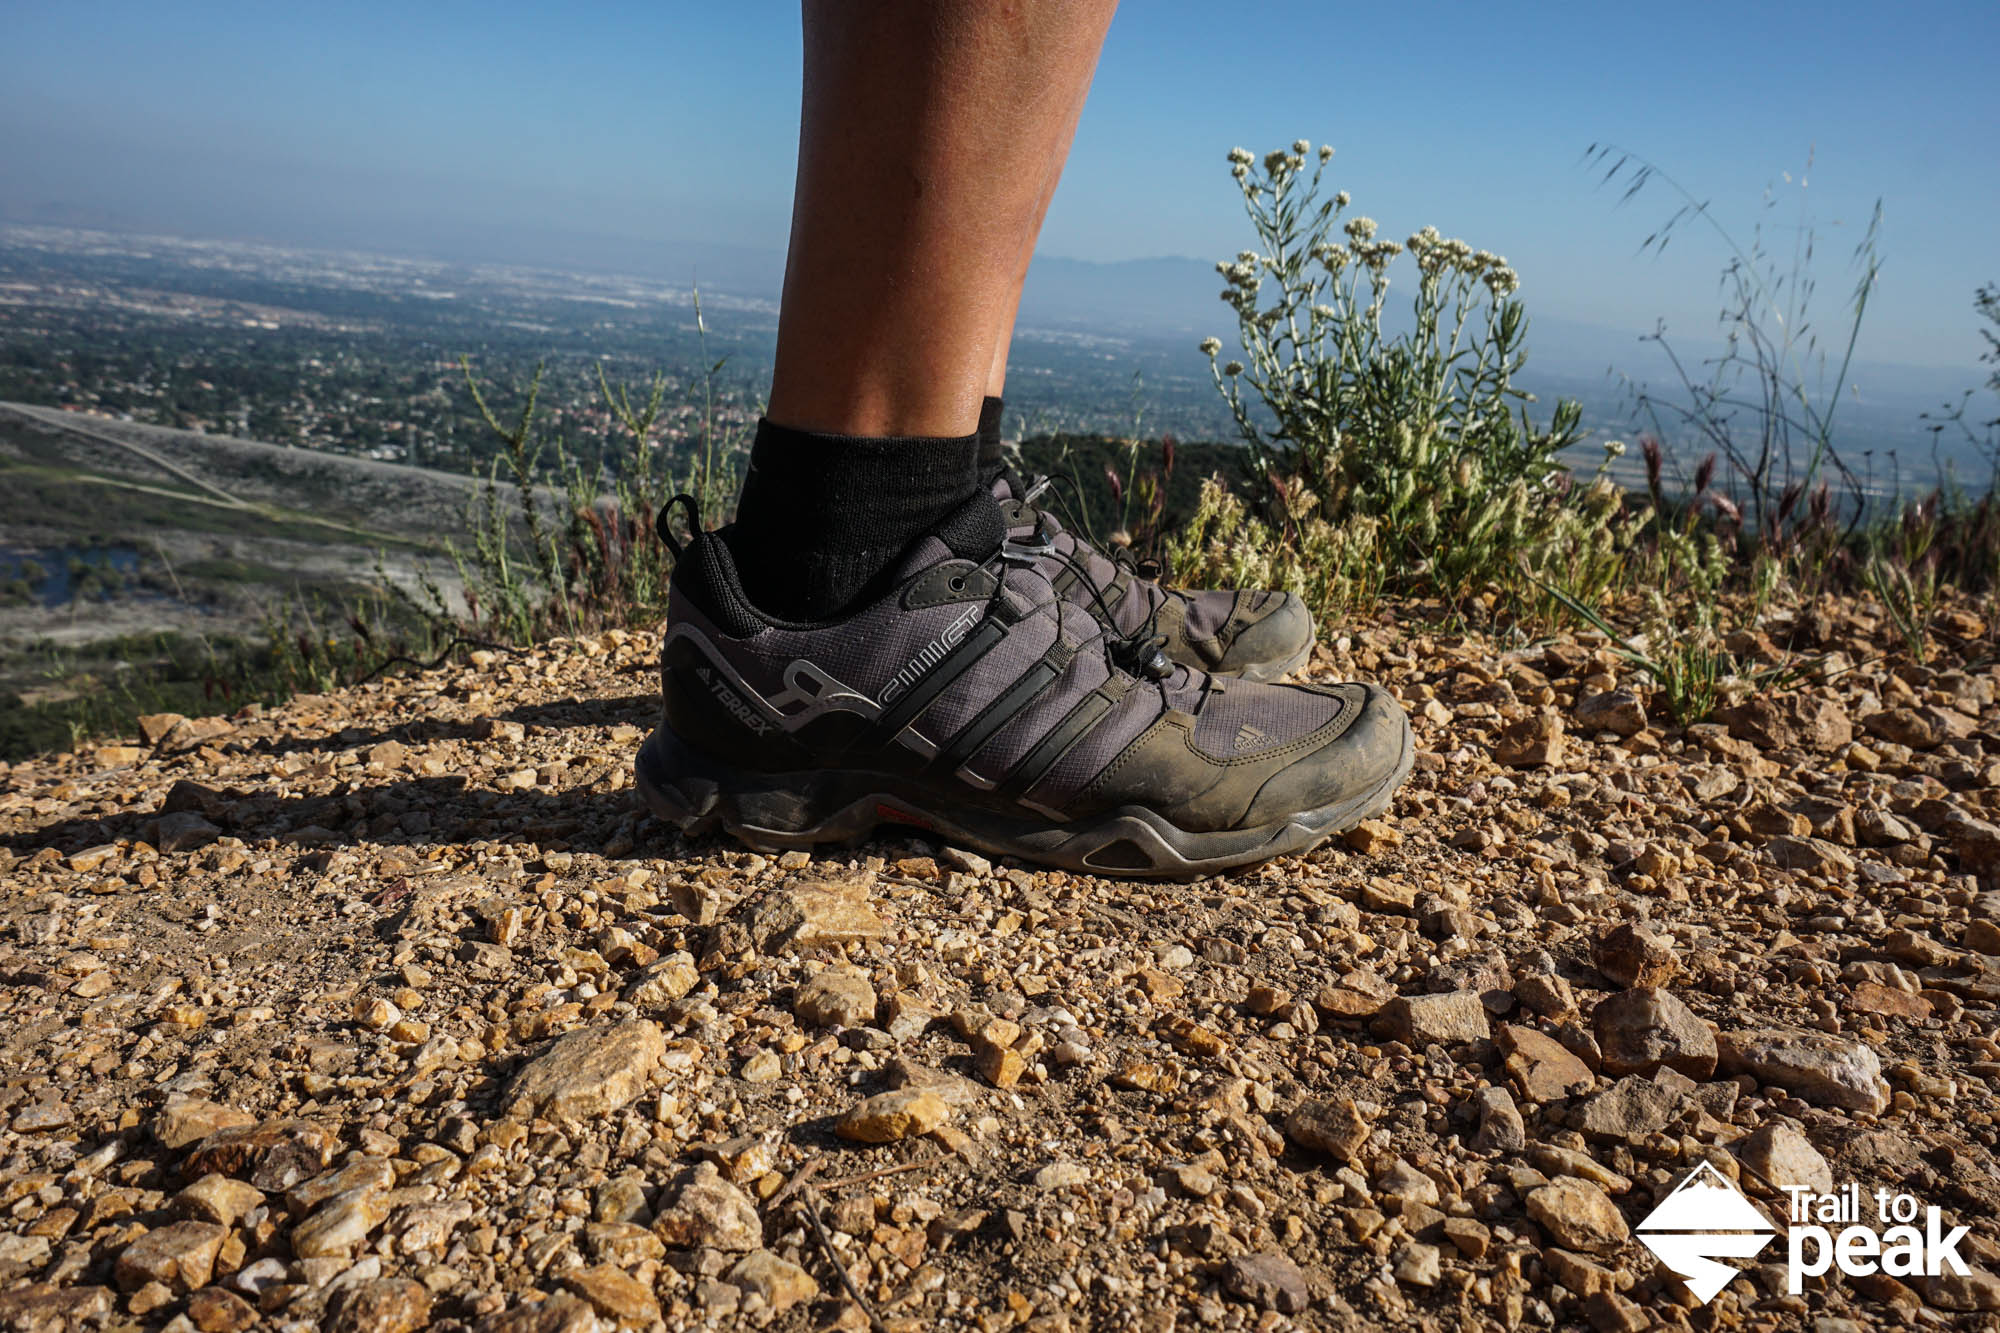 Terrex Gear Hiking Peak Trail Shoes ReviewAdidas Swift To R 29YEWIDH